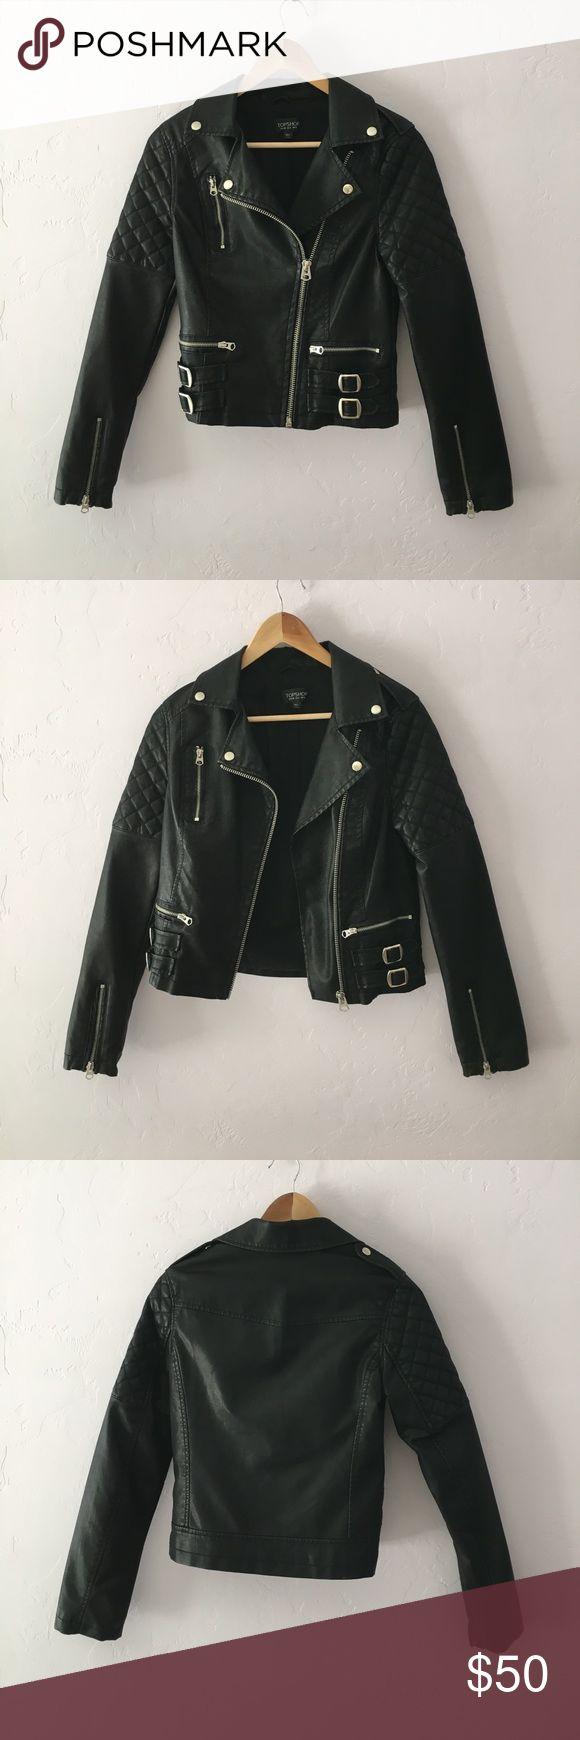 Topshop Moto Biker Jacket Adorable distressed Topshop motorcycle jacket with quilted shoulders and fake buckles on each side. Note that the faux leather shows light distressing: most of this is intentional but there are a few light marks from wear (though they simply add to the distressed look). Overall it is in great condition!! Topshop Jackets & Coats